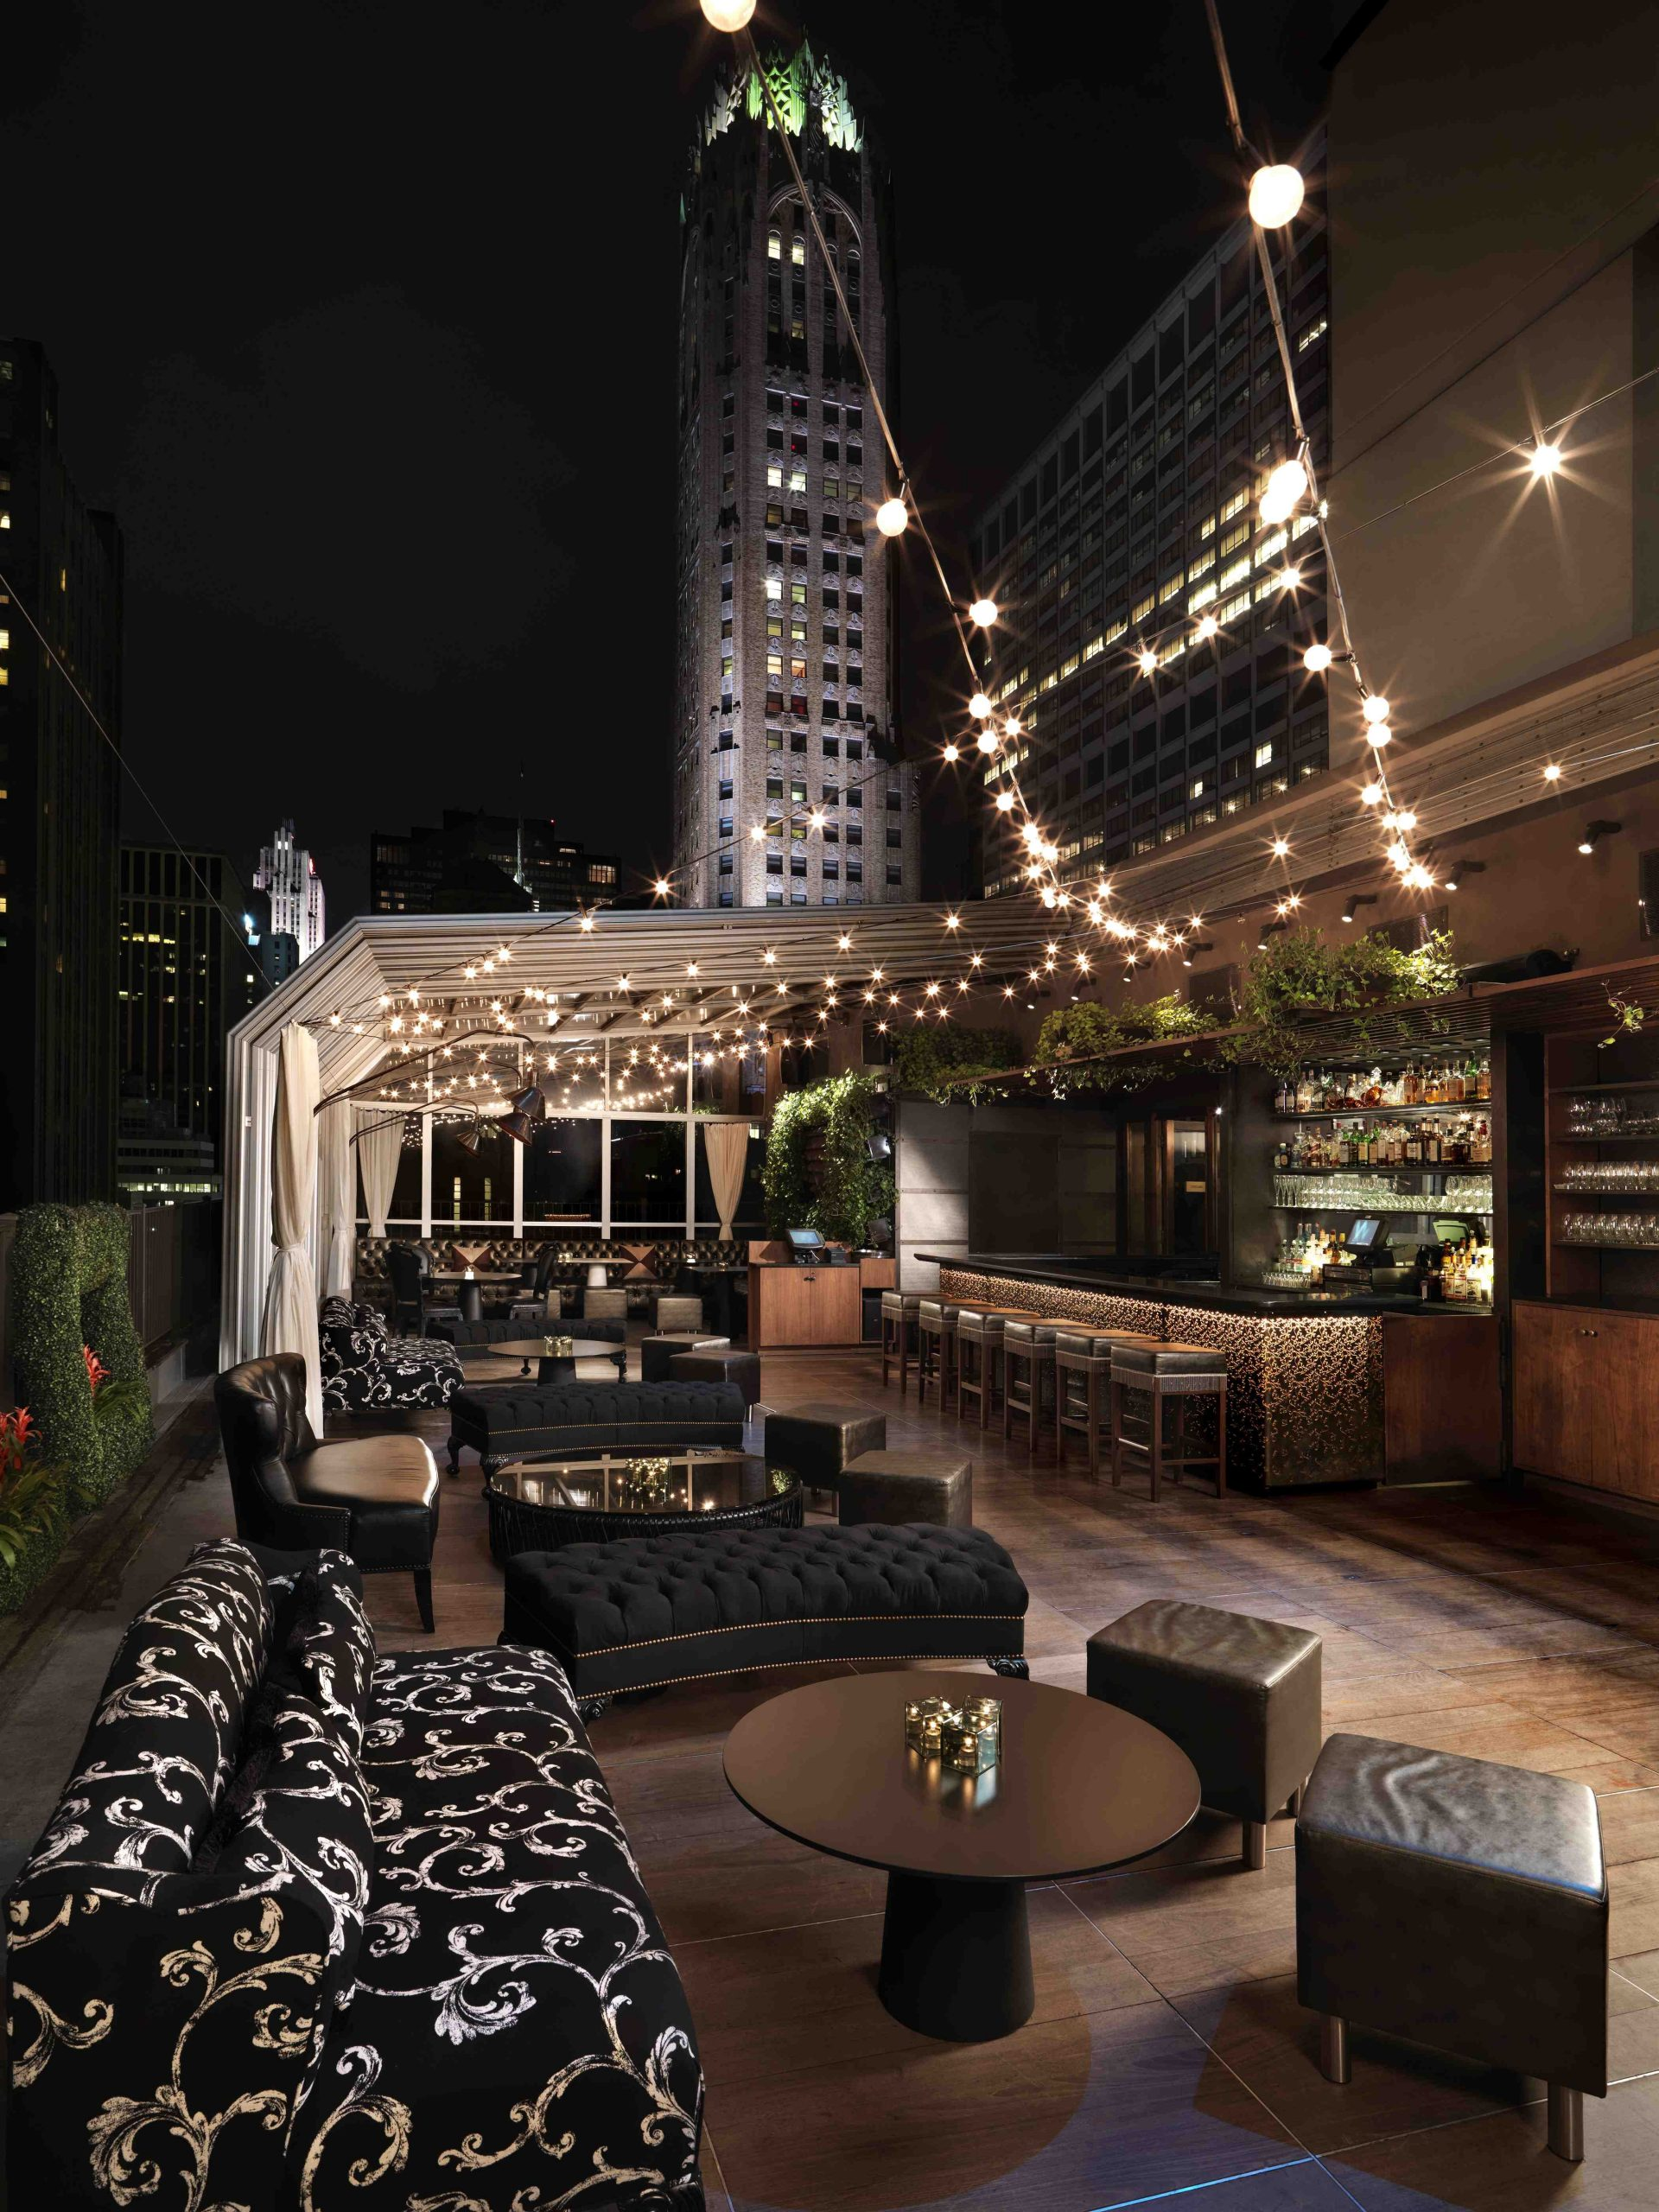 Rendezvous for a hot date at the ultra-chic Kimberly Hotel's uber-romantic rooft…